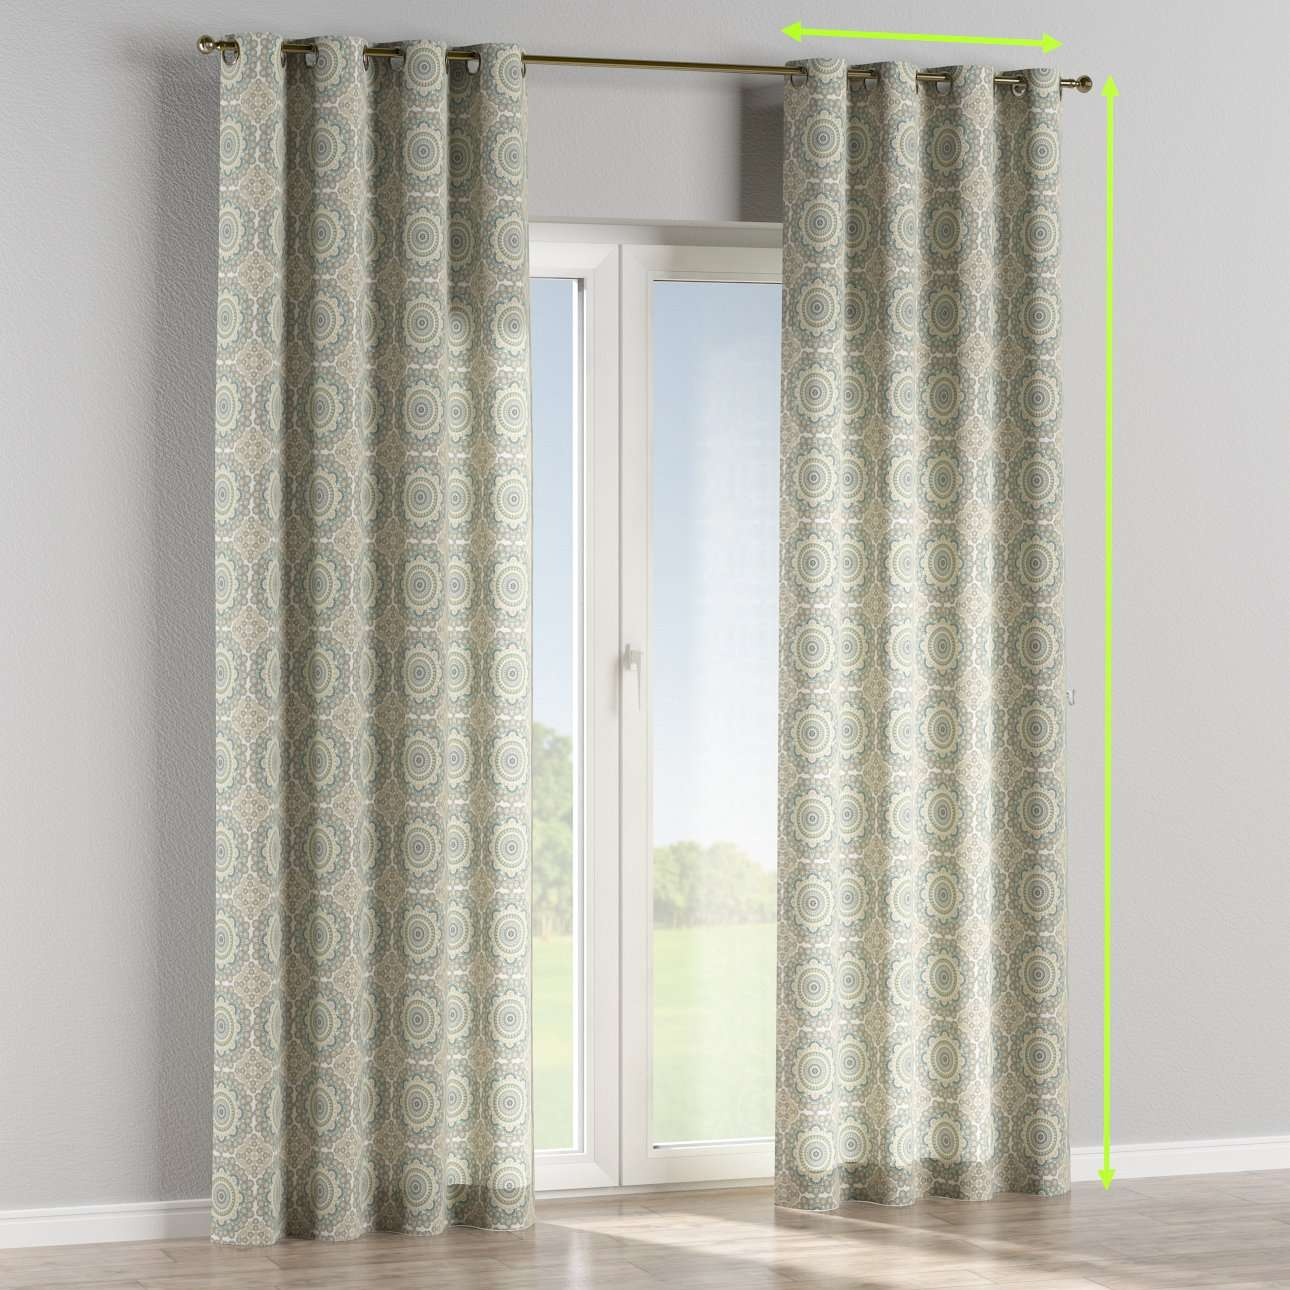 Eyelet lined curtains in collection Comic Book & Geo Prints, fabric: 137-84